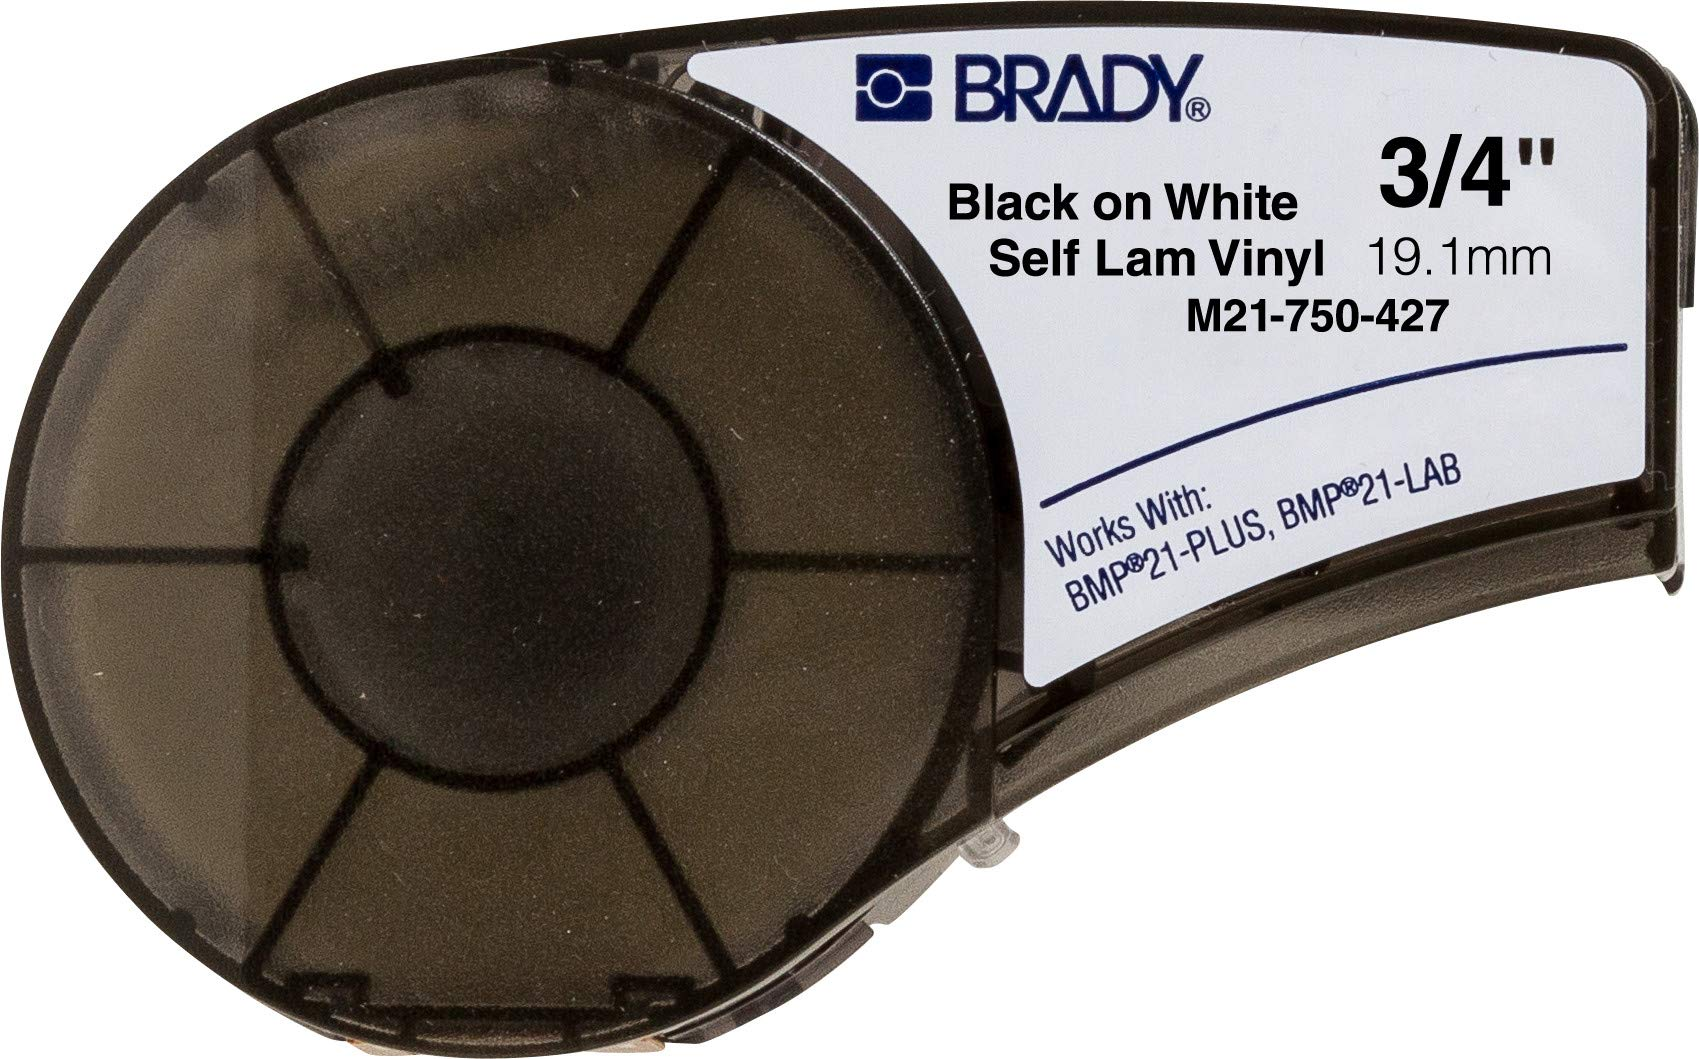 Brady Self-Laminating Vinyl Label Tape (M21-750-427) - Black on White, Translucent Tape - Compatible with BMP21-PLUS Label Printer - 14' Length.75'' Width